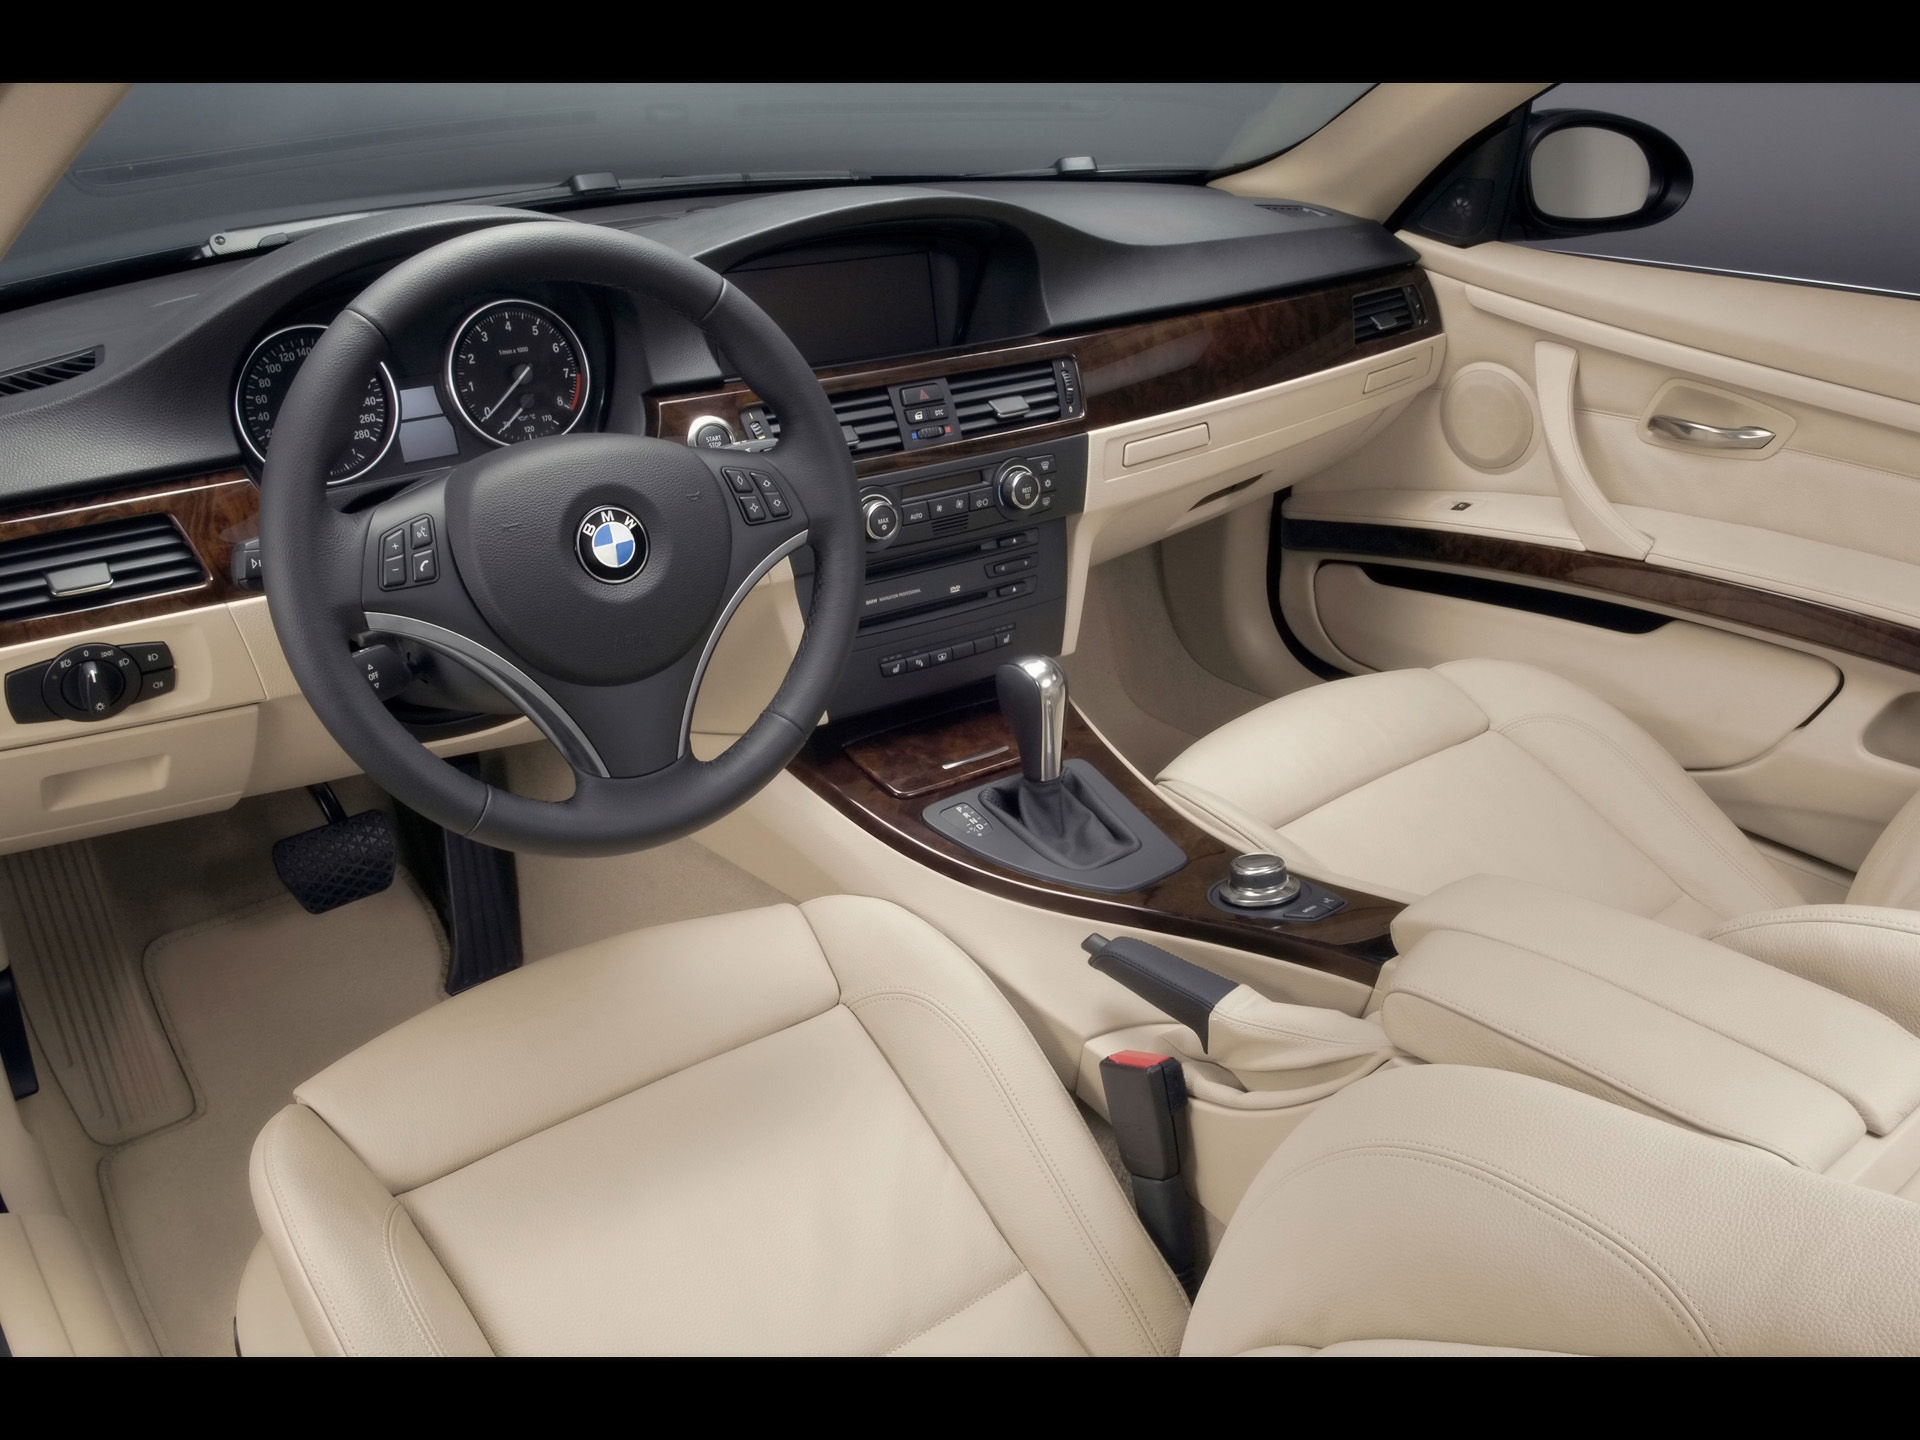 2007 BMW 335i Coupe - Cockpit - 1920x1440 Wallpaper. Image Credits - BMW